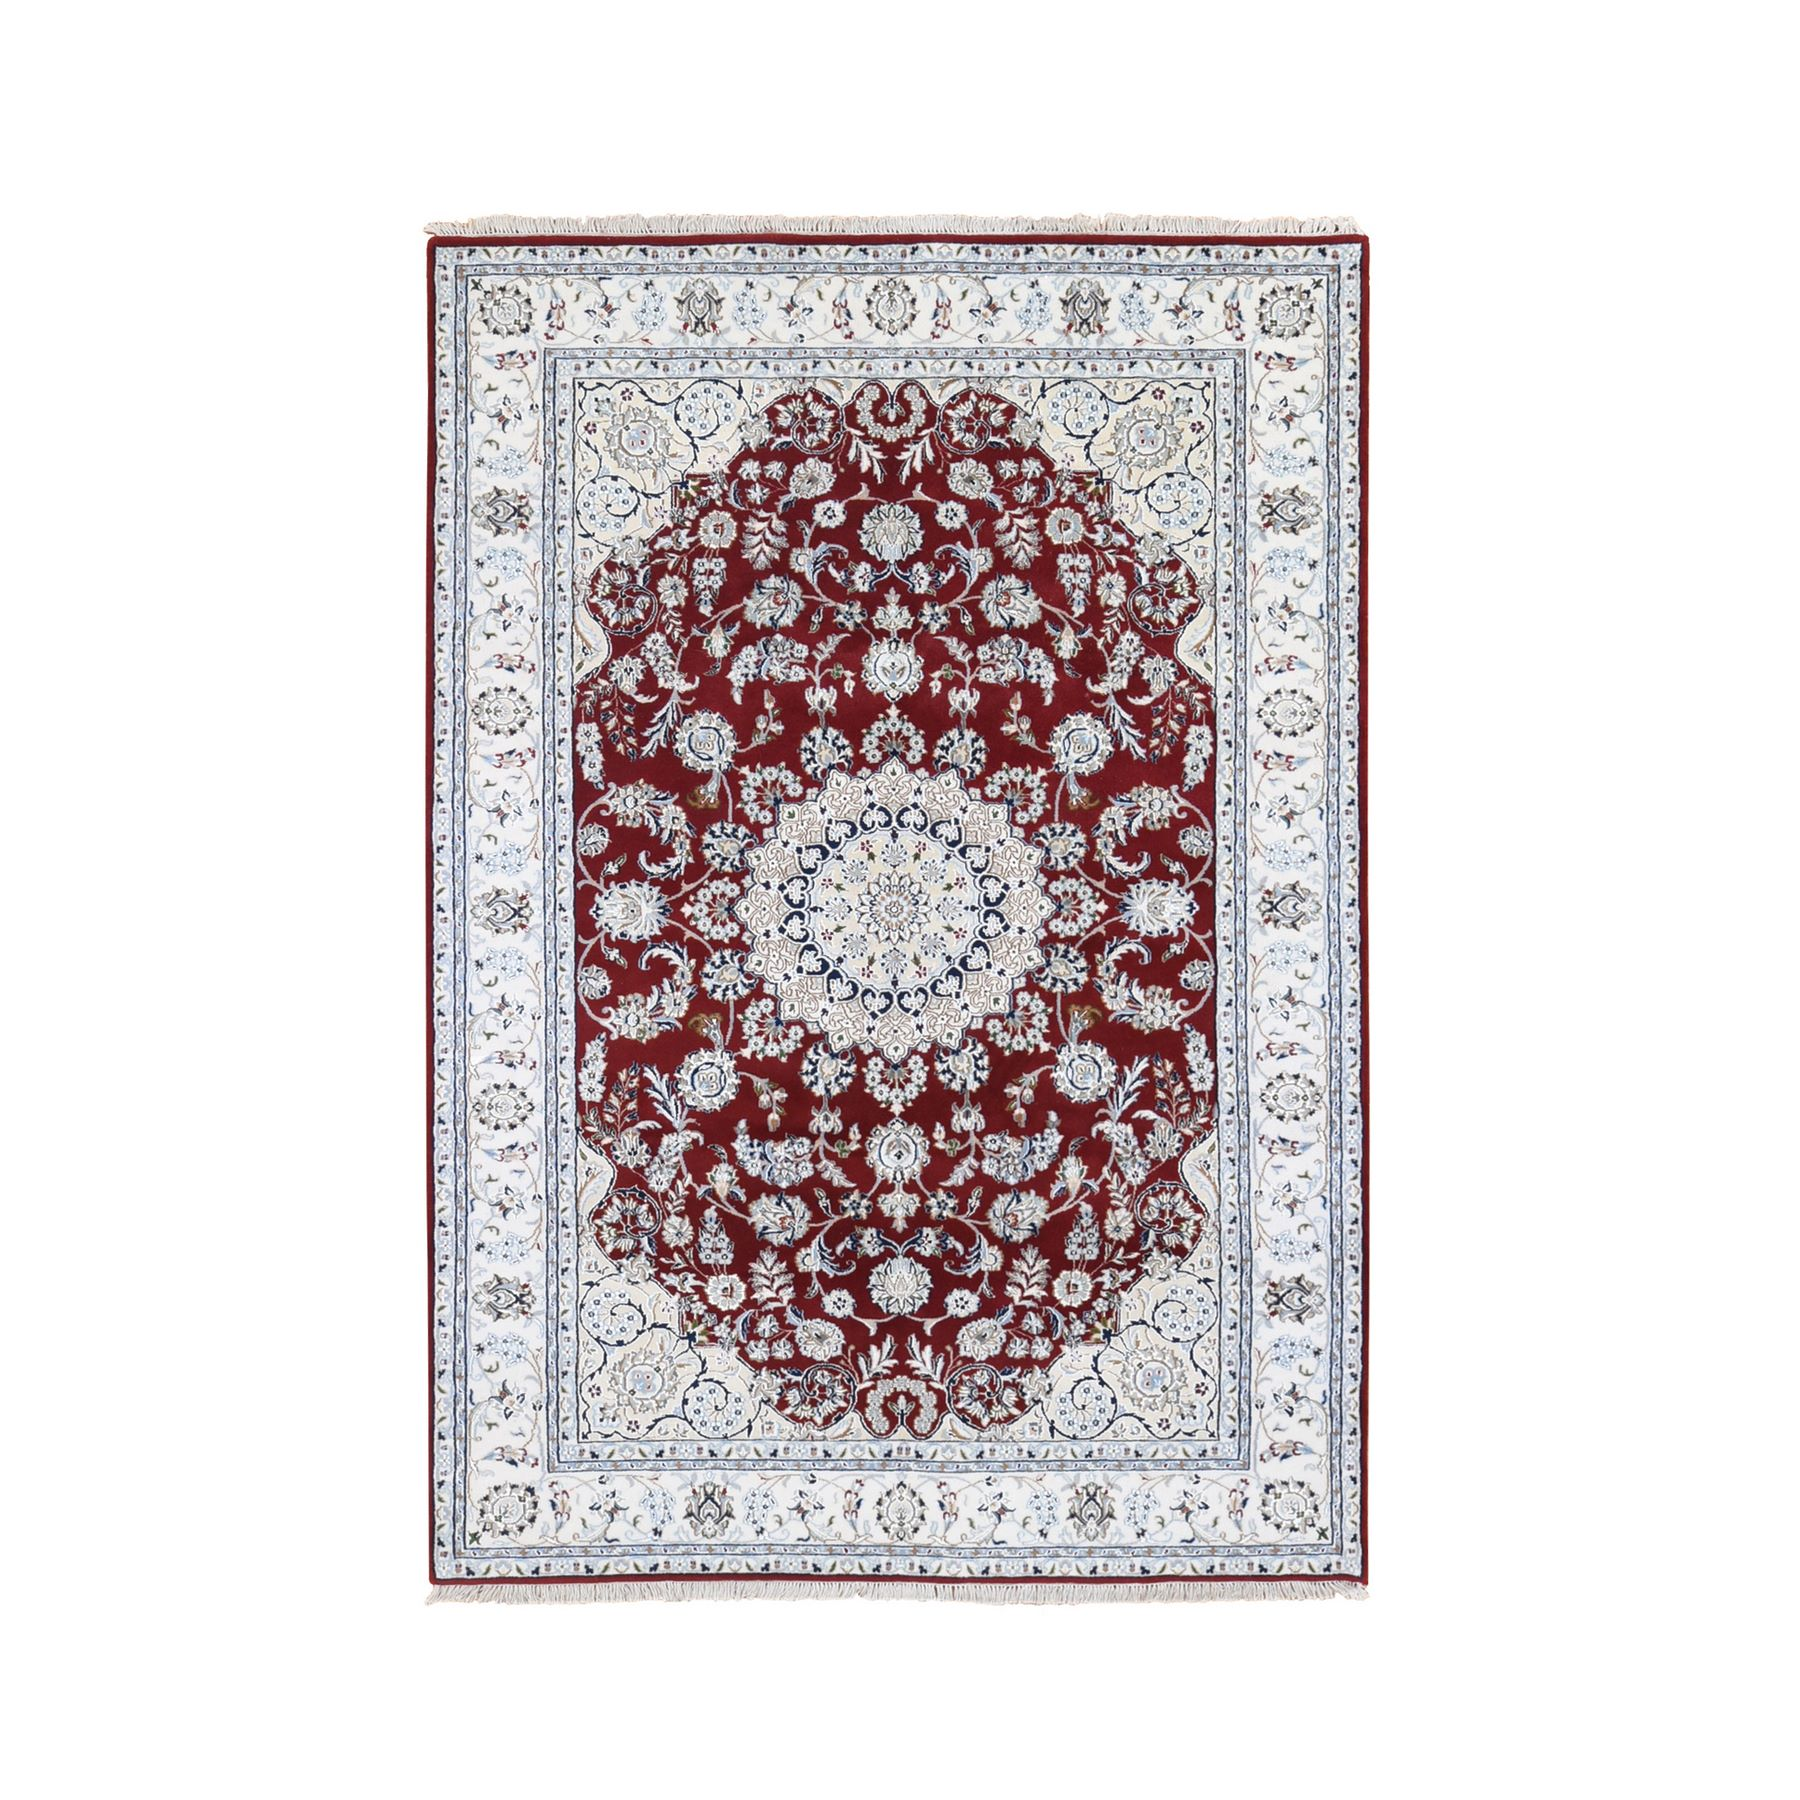 Pirniakan Collection Hand Knotted Red Rug No: 1133902